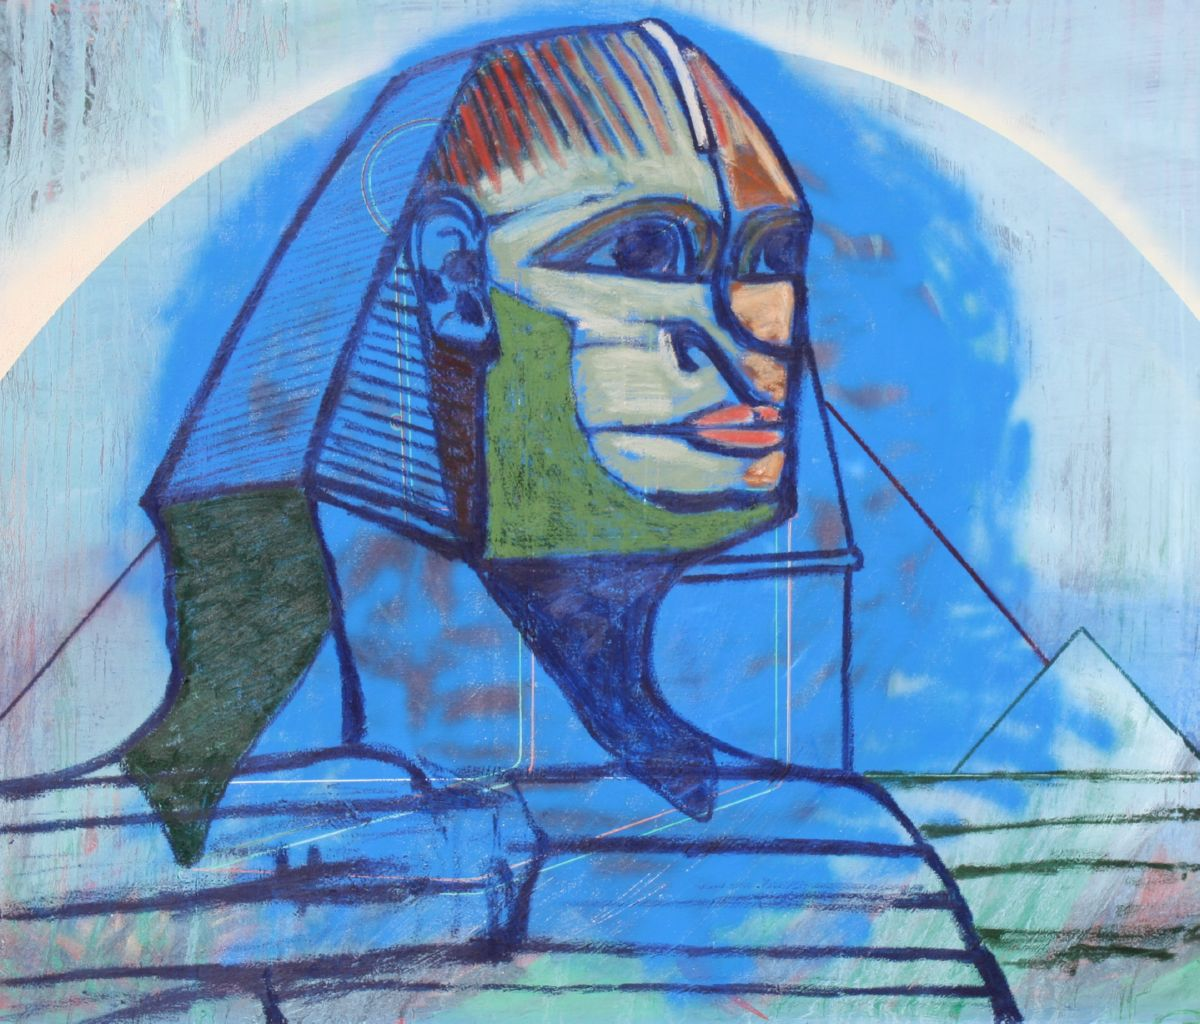 Blue Sphinx, art for sale online by Joe McGee